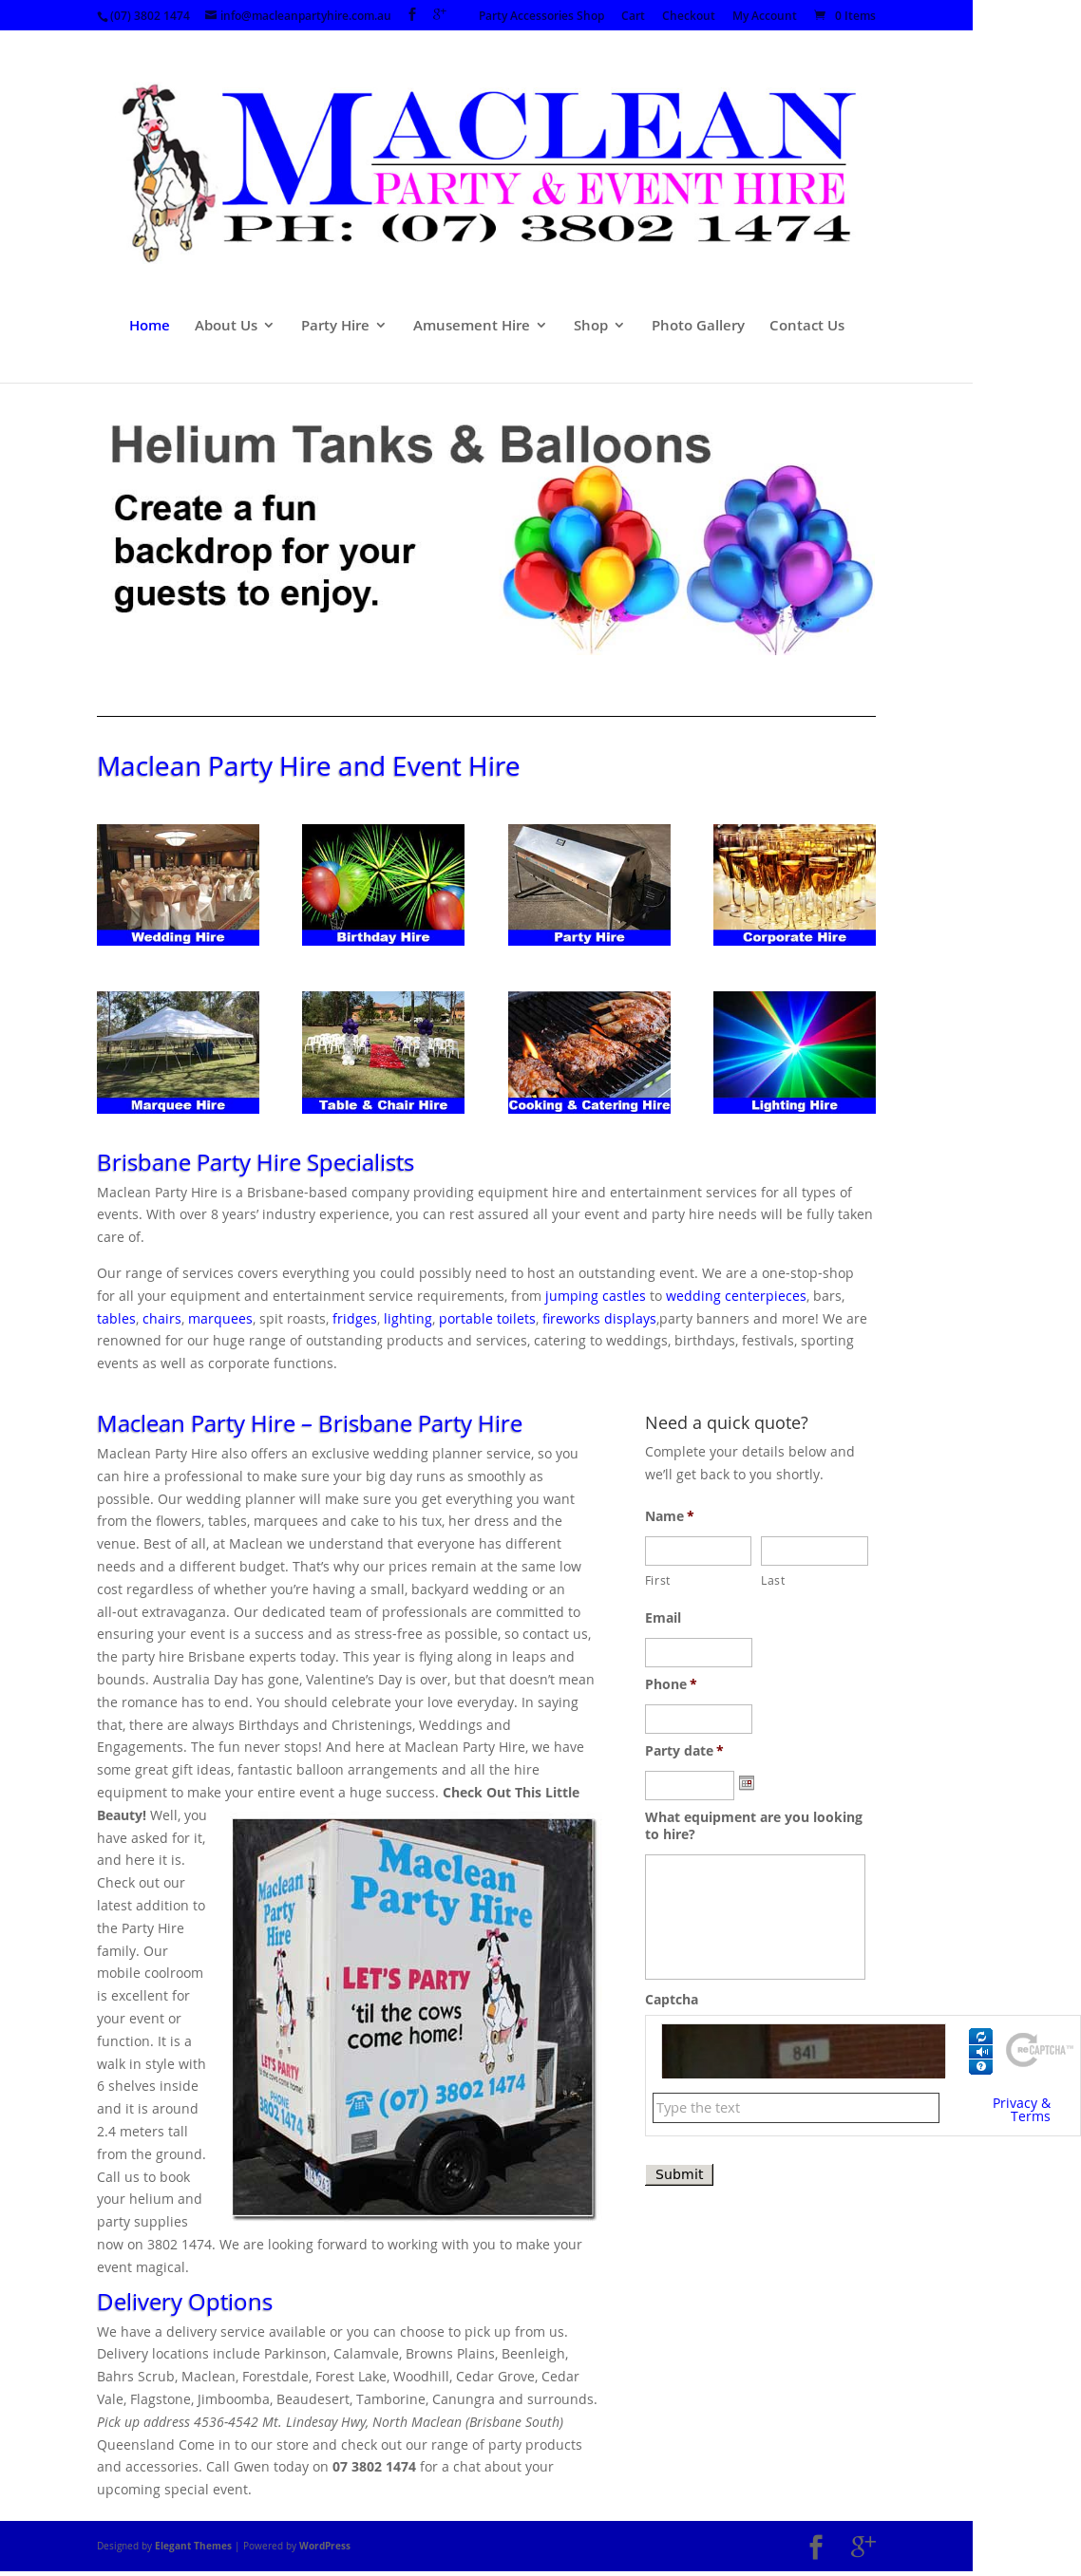 Maclean Party Hire & Event Styling Competitors, Revenue and